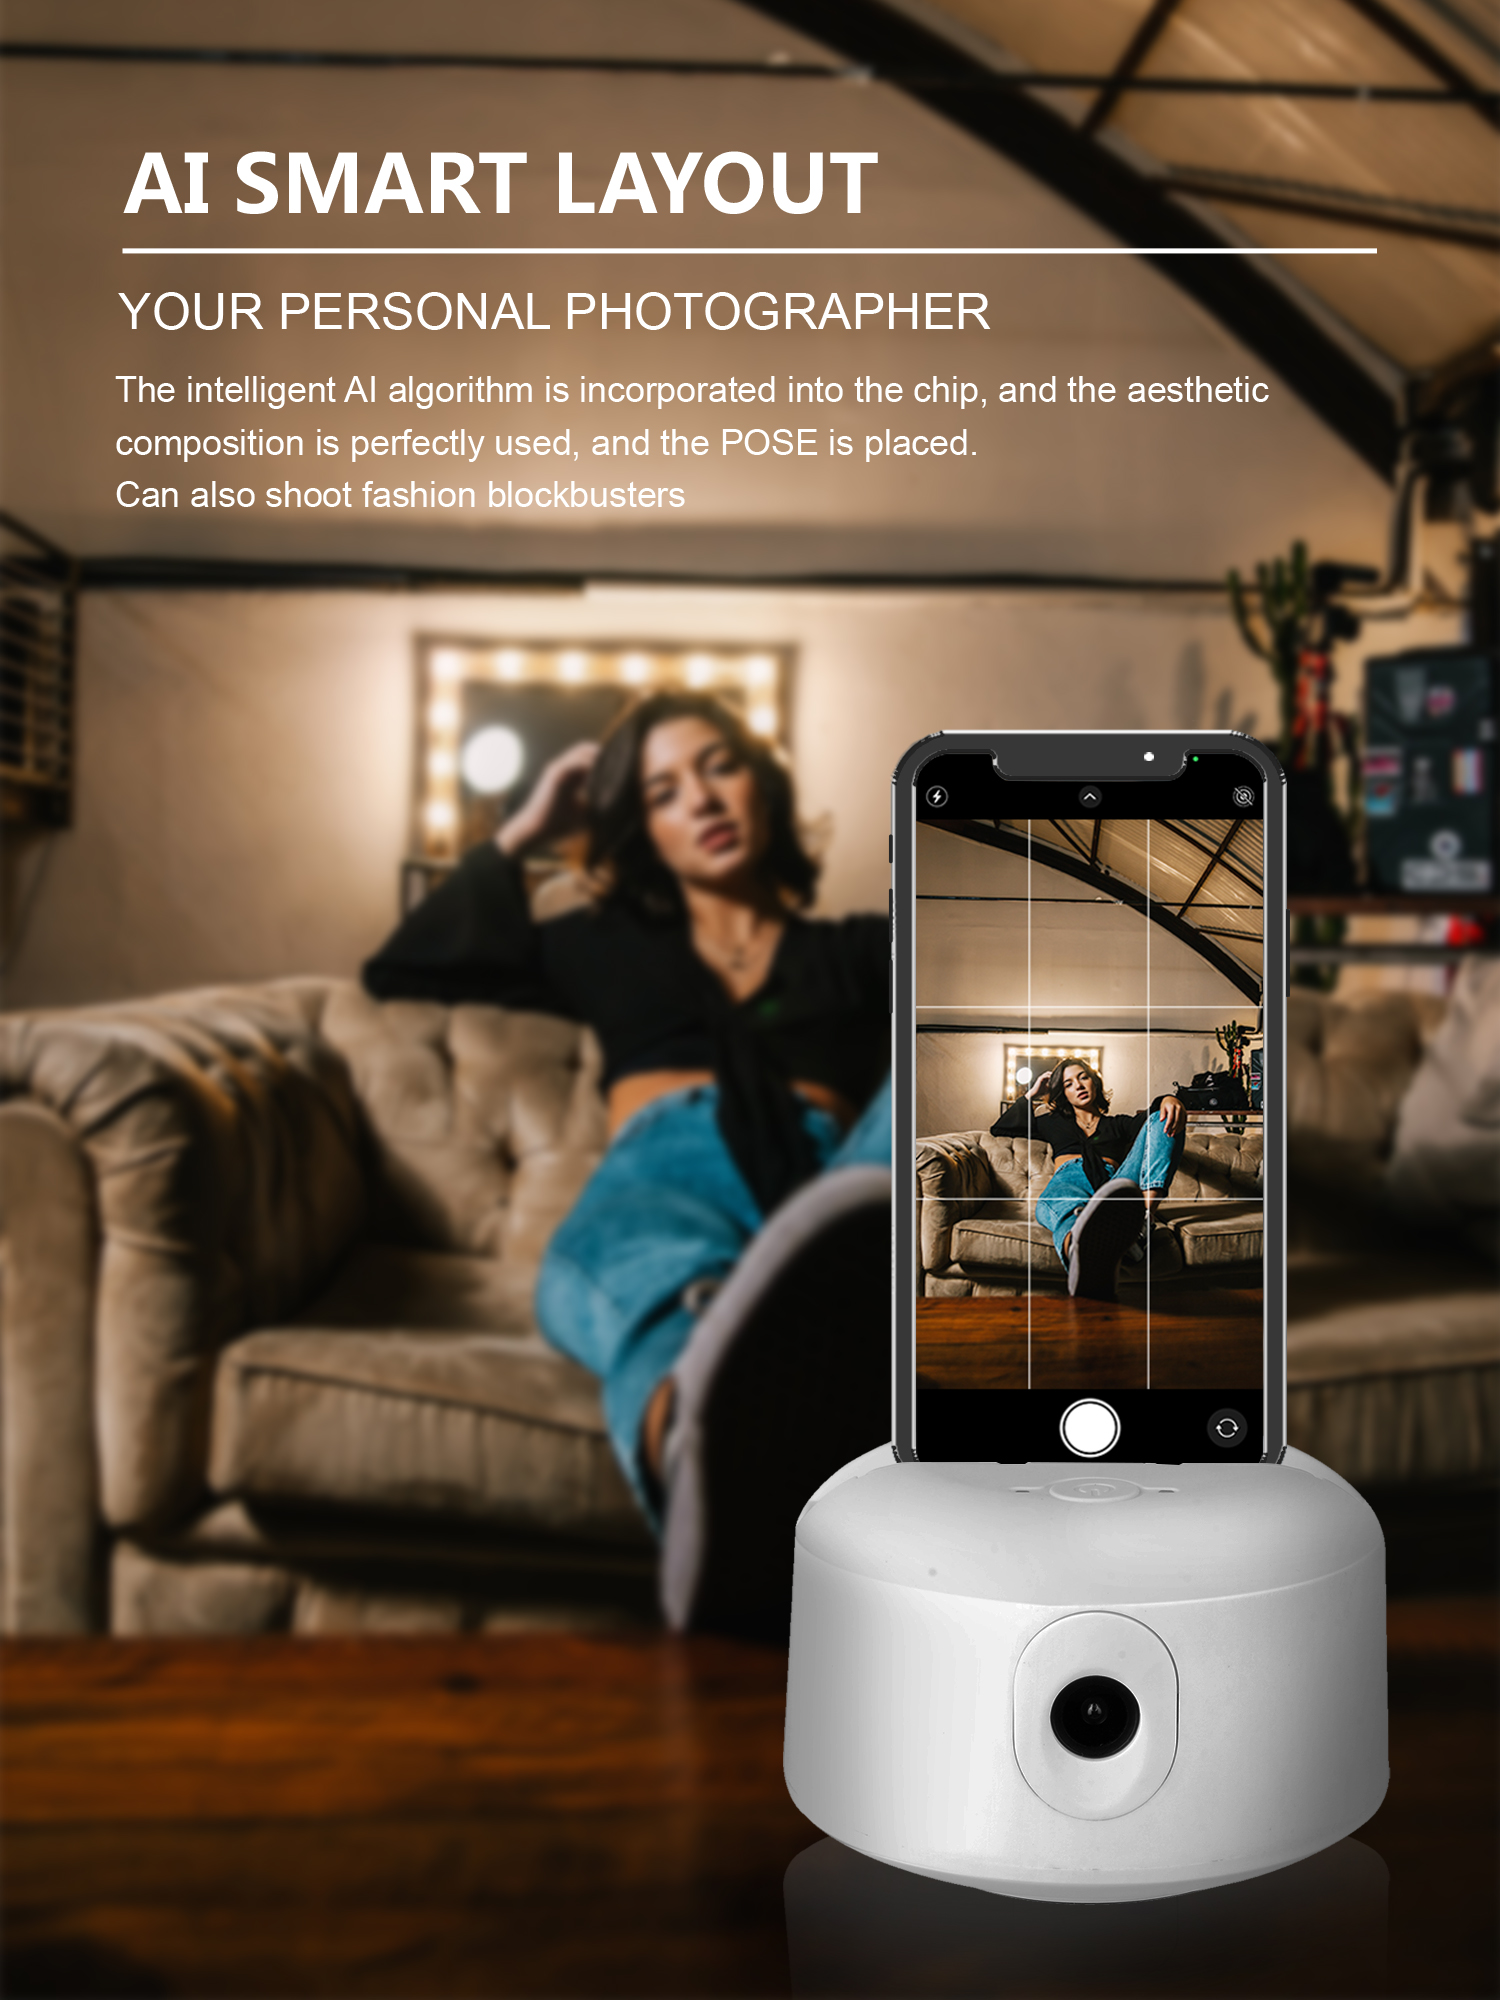 Like a cameraman! IMovie: Auto Tracking - Smart Shooting - 360 ° Rotation - Face Recognition - Video Call - Multistreamlive - Quick Create Mode - Remote Control - No need to install the app.